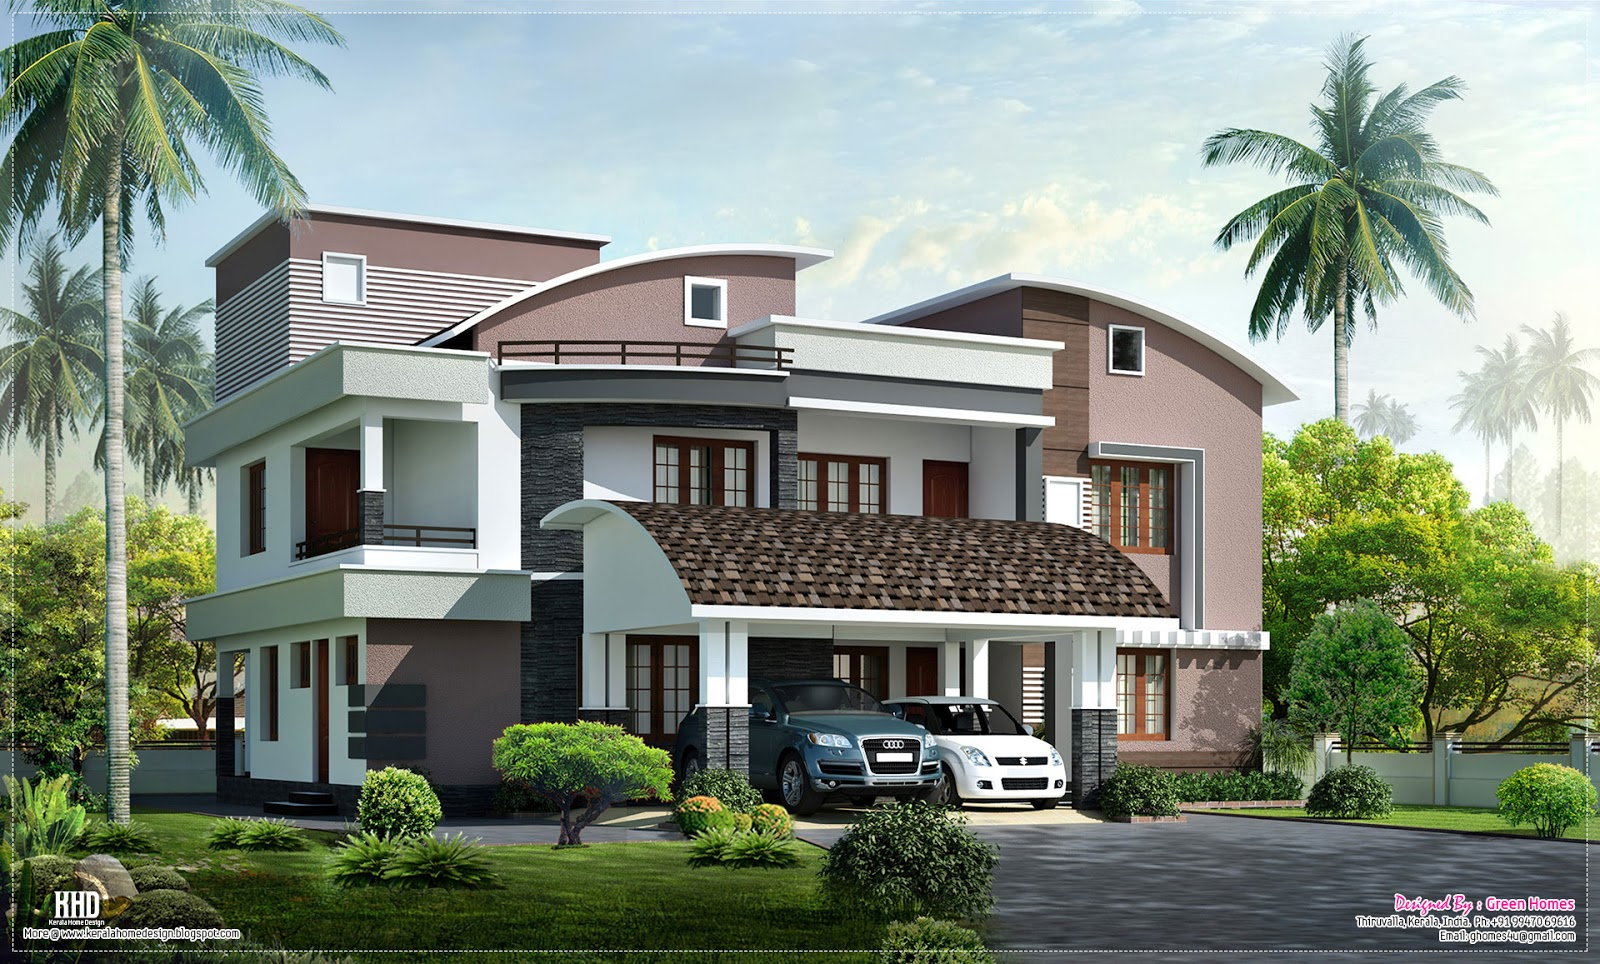 Modern style luxury villa exterior design home kerala plans for Different exterior house styles